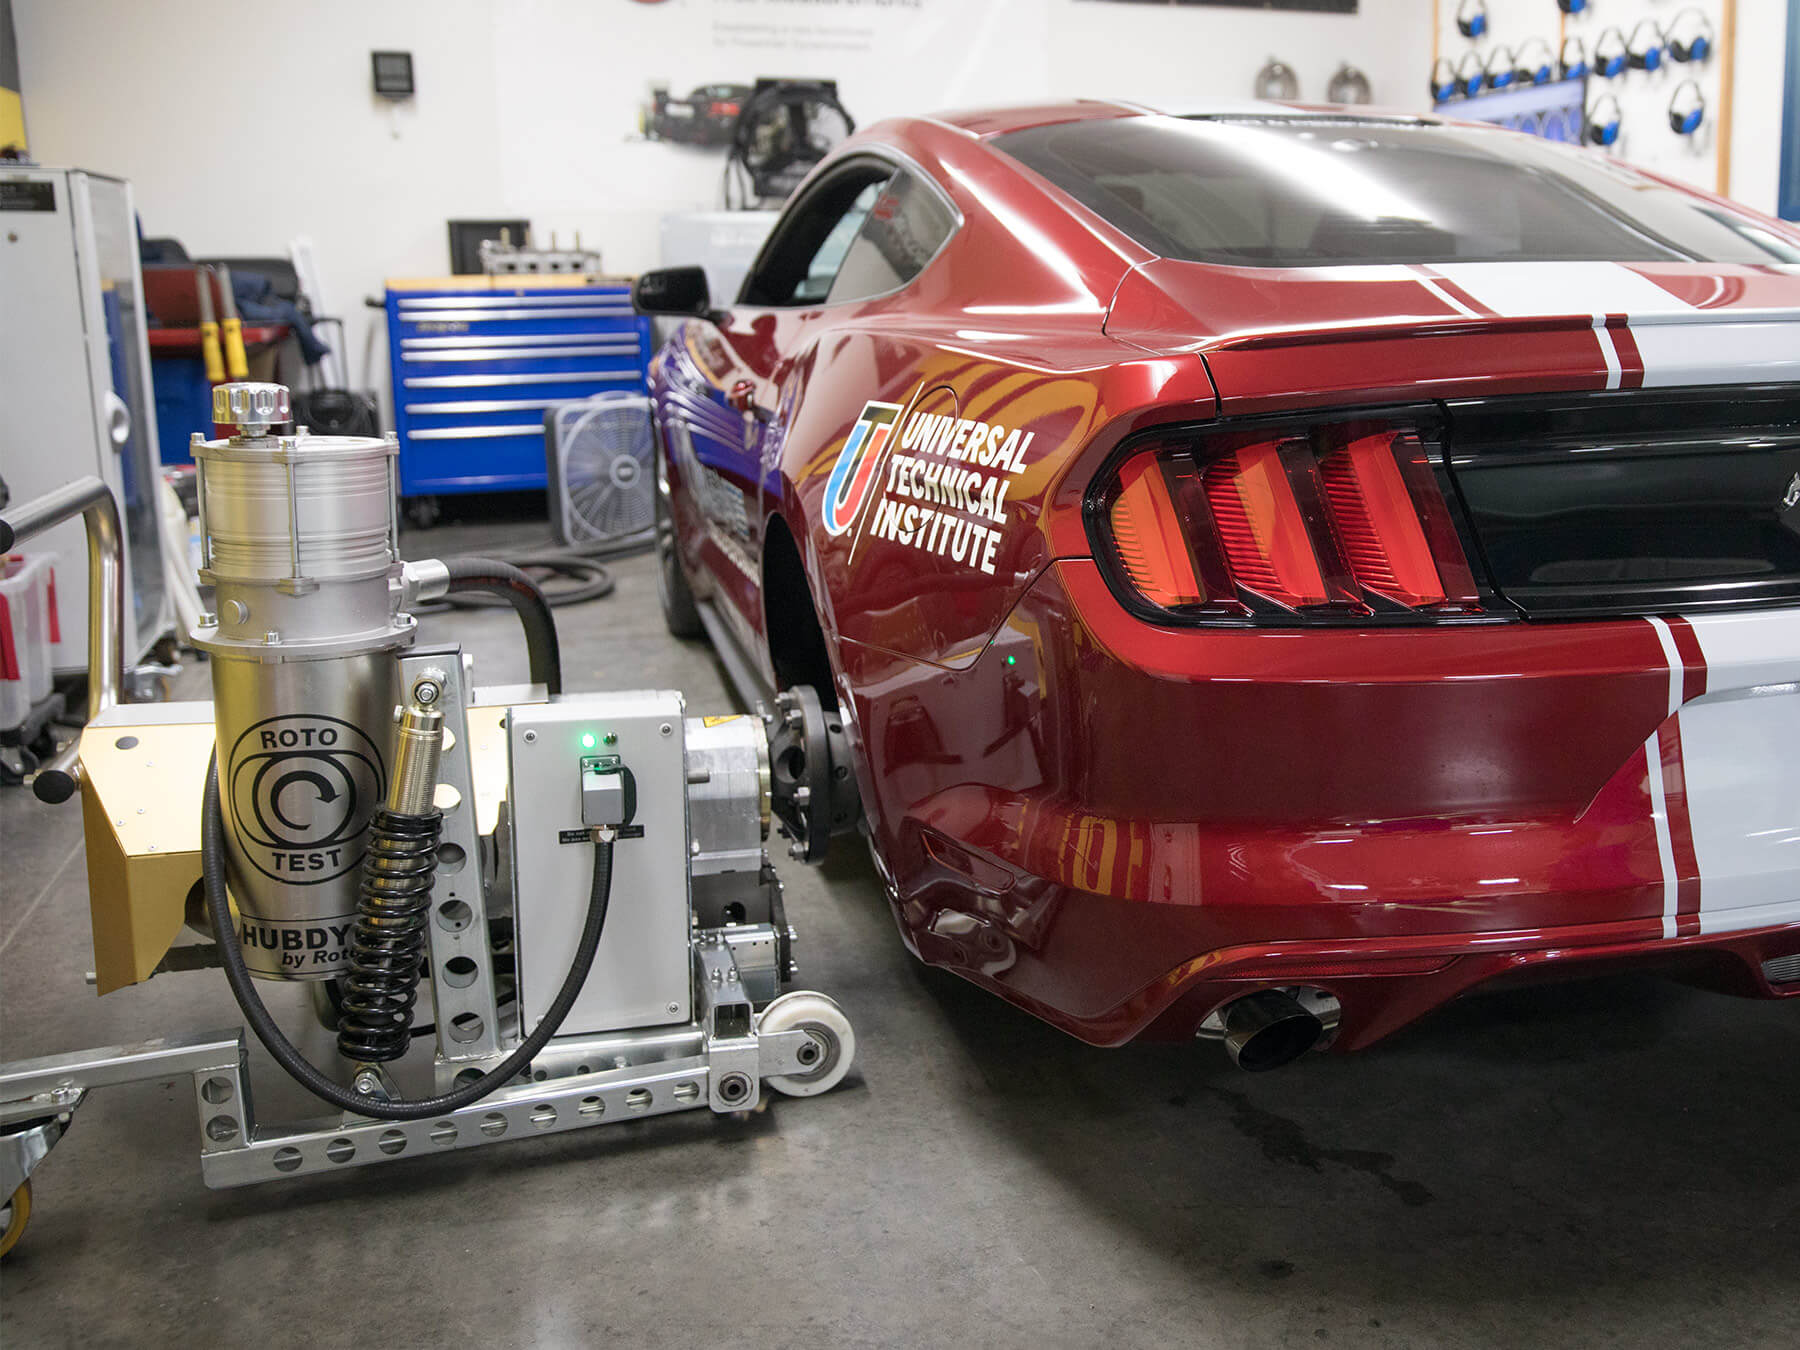 Rototest dyno machine hooked up to a red mustang